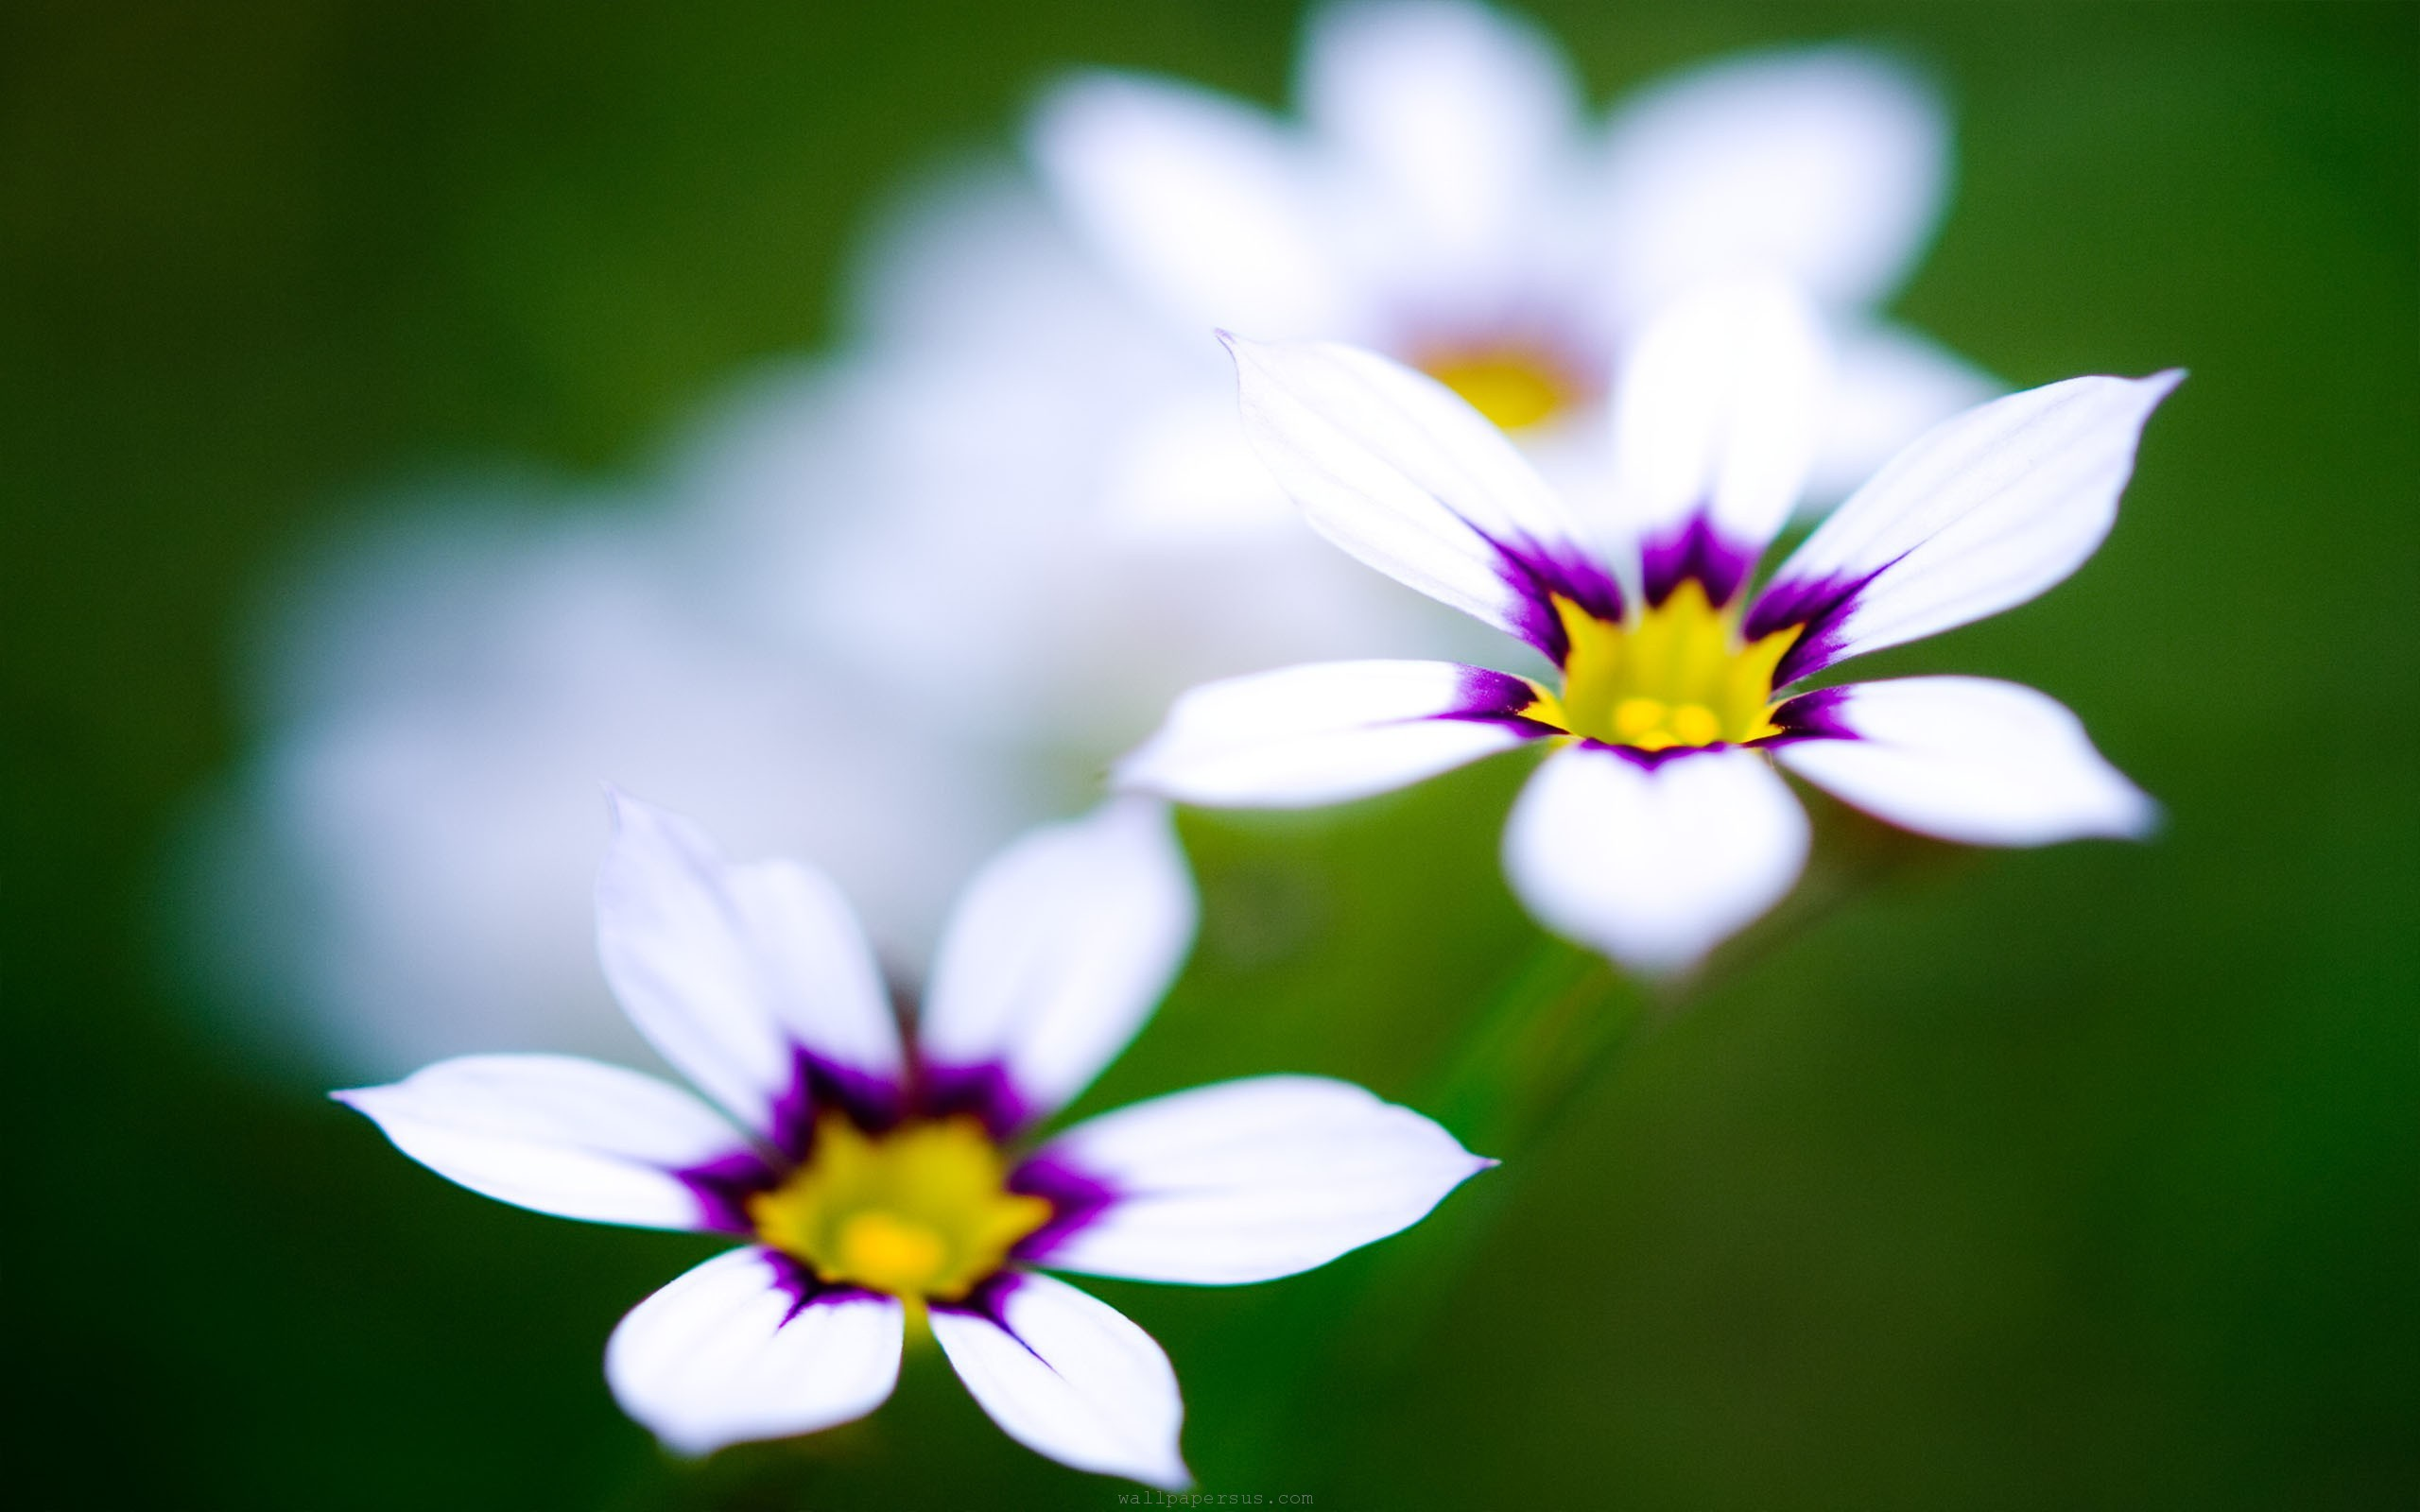 purple flowers cute wallpaper share this cute wallpaper on facebook 2560x1600